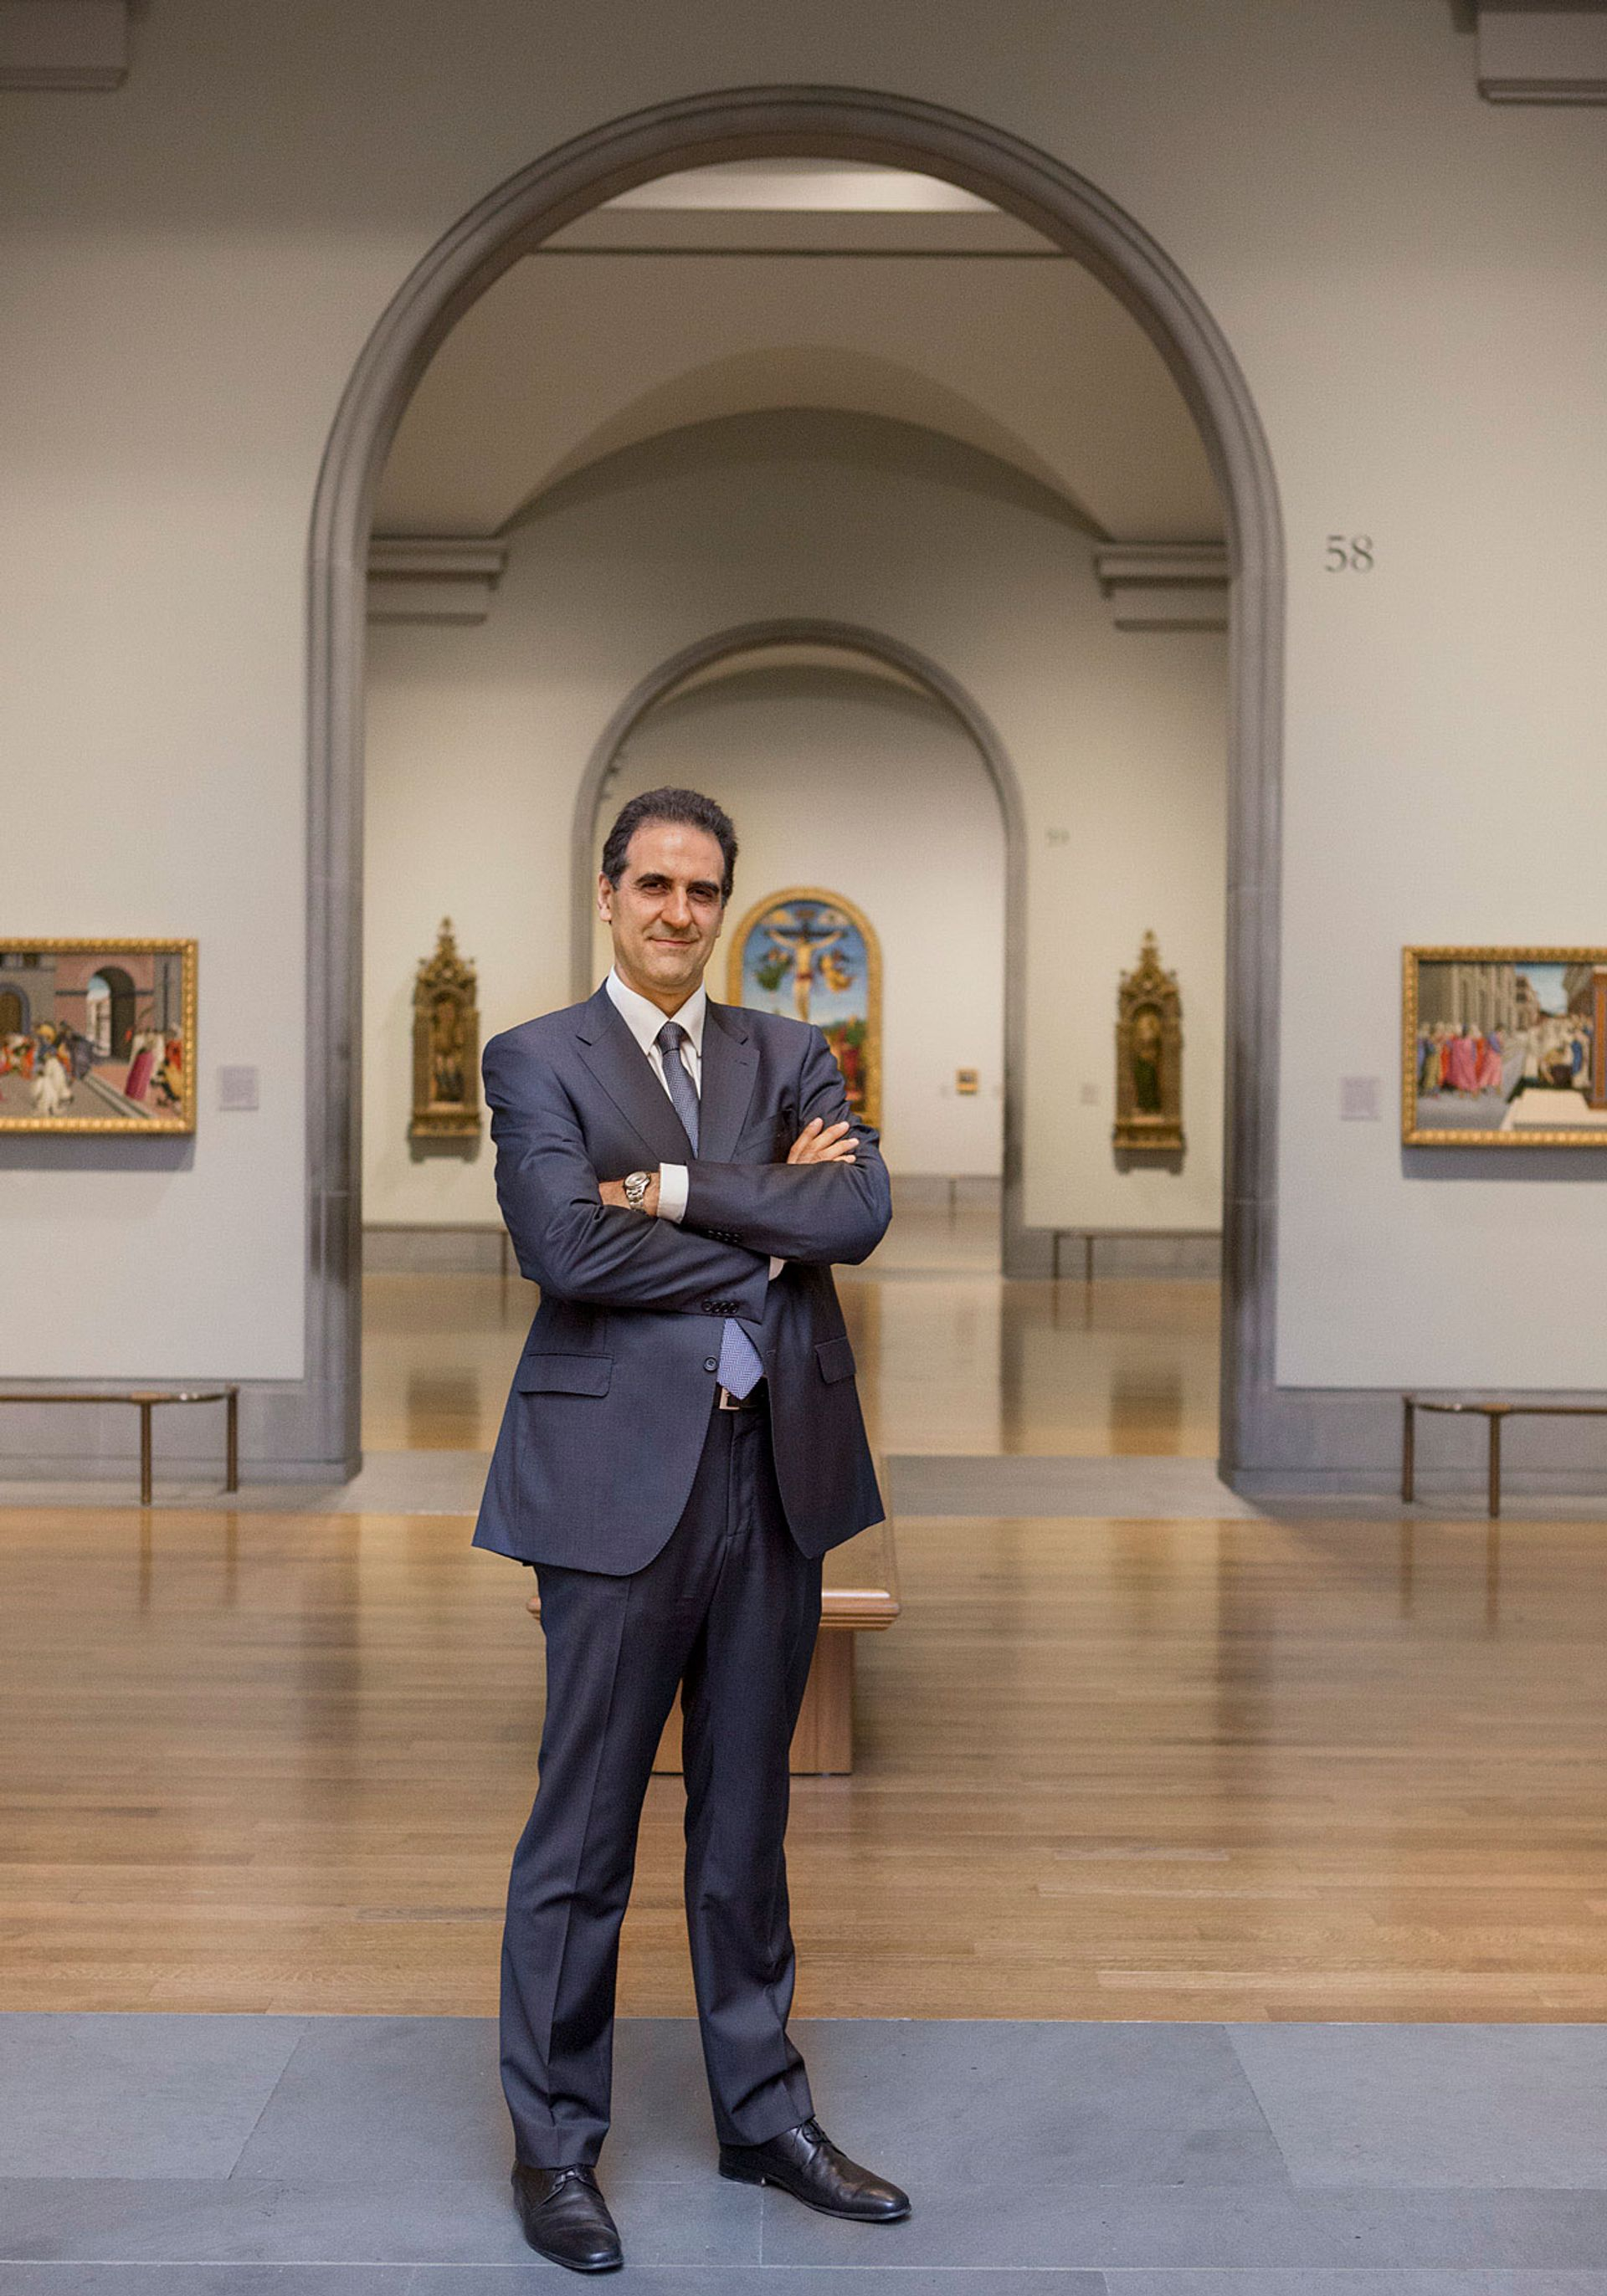 """Gabriele Finaldi, the director of the National Gallery, says its new five-year strategy will """"see us fighting our way out of the crisis"""" © The National Gallery, London"""